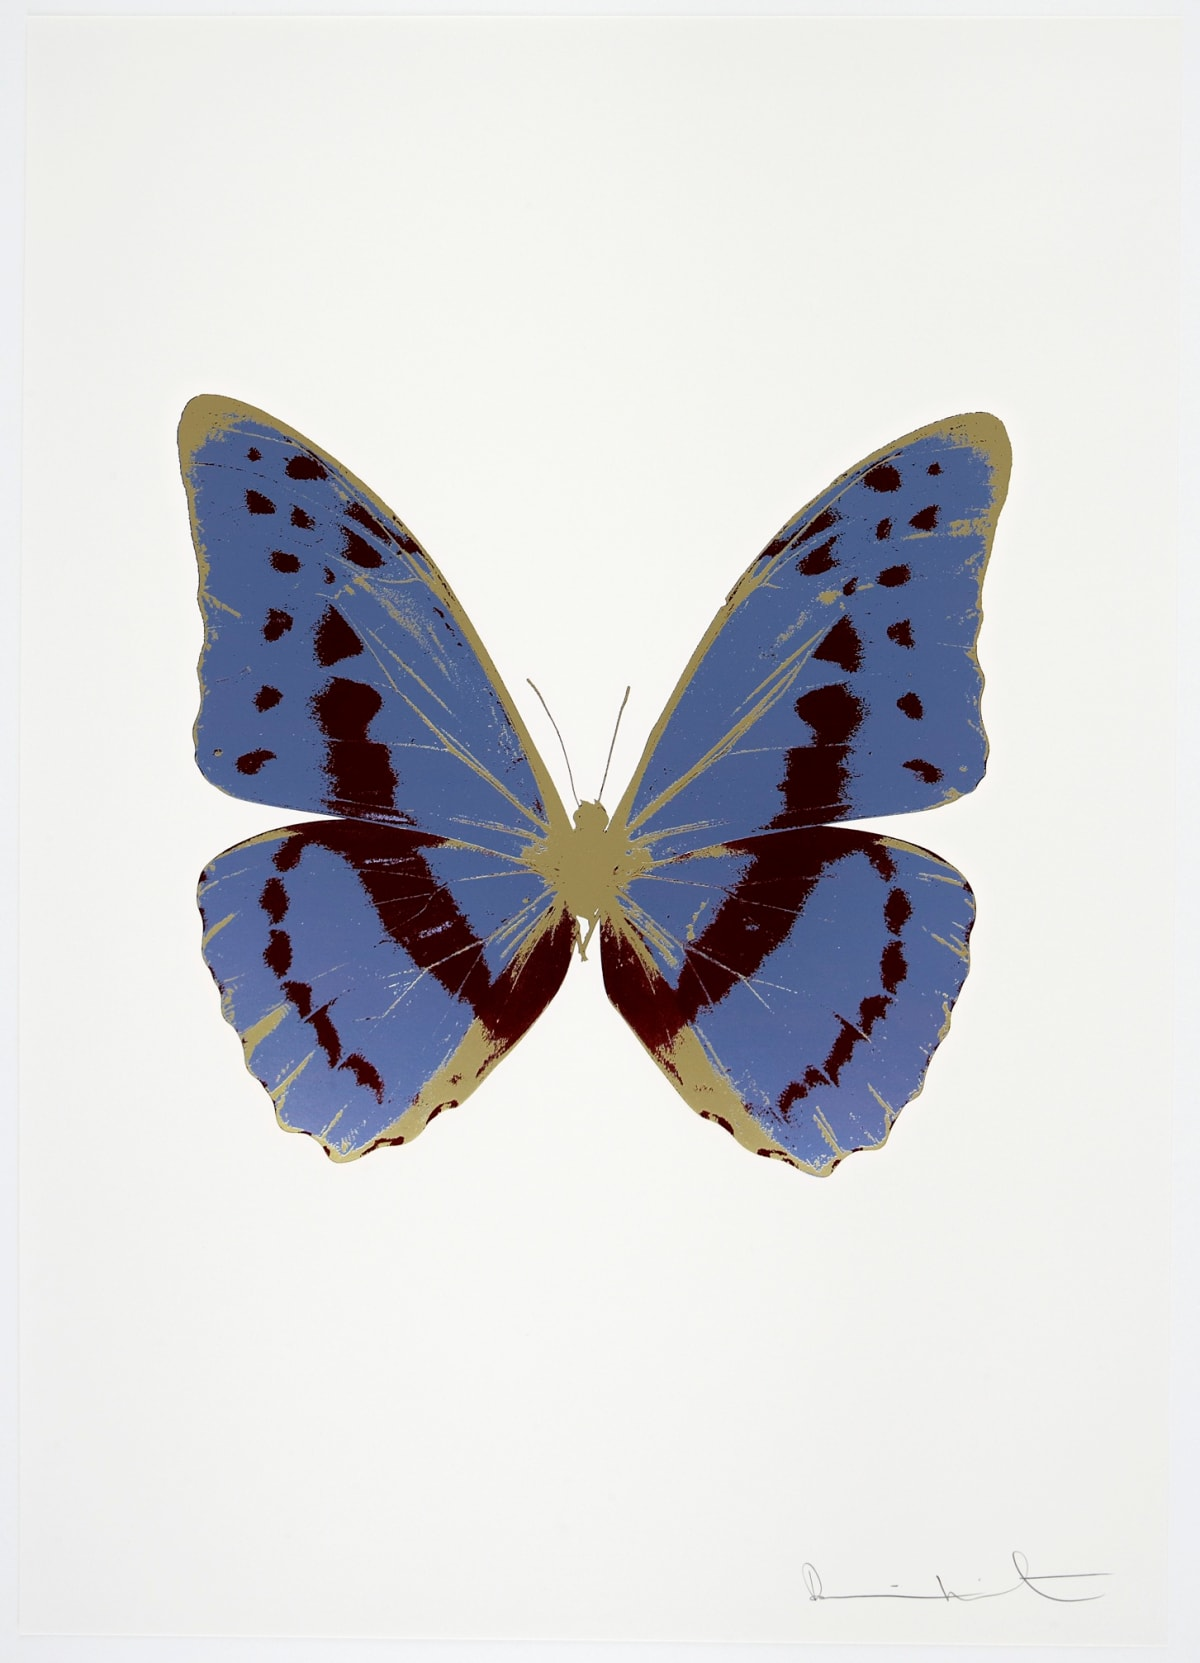 Damien Hirst The Souls III - Cornflower Blue/Burgundy/Cool Gold, 2010 3 colour foil block on 300gsm Arches 88 archival paper. Signed and numbered. Published by Paul Stolper and Other Criteria 72 x 51cm OC7930 / 660-33 Edition of 15